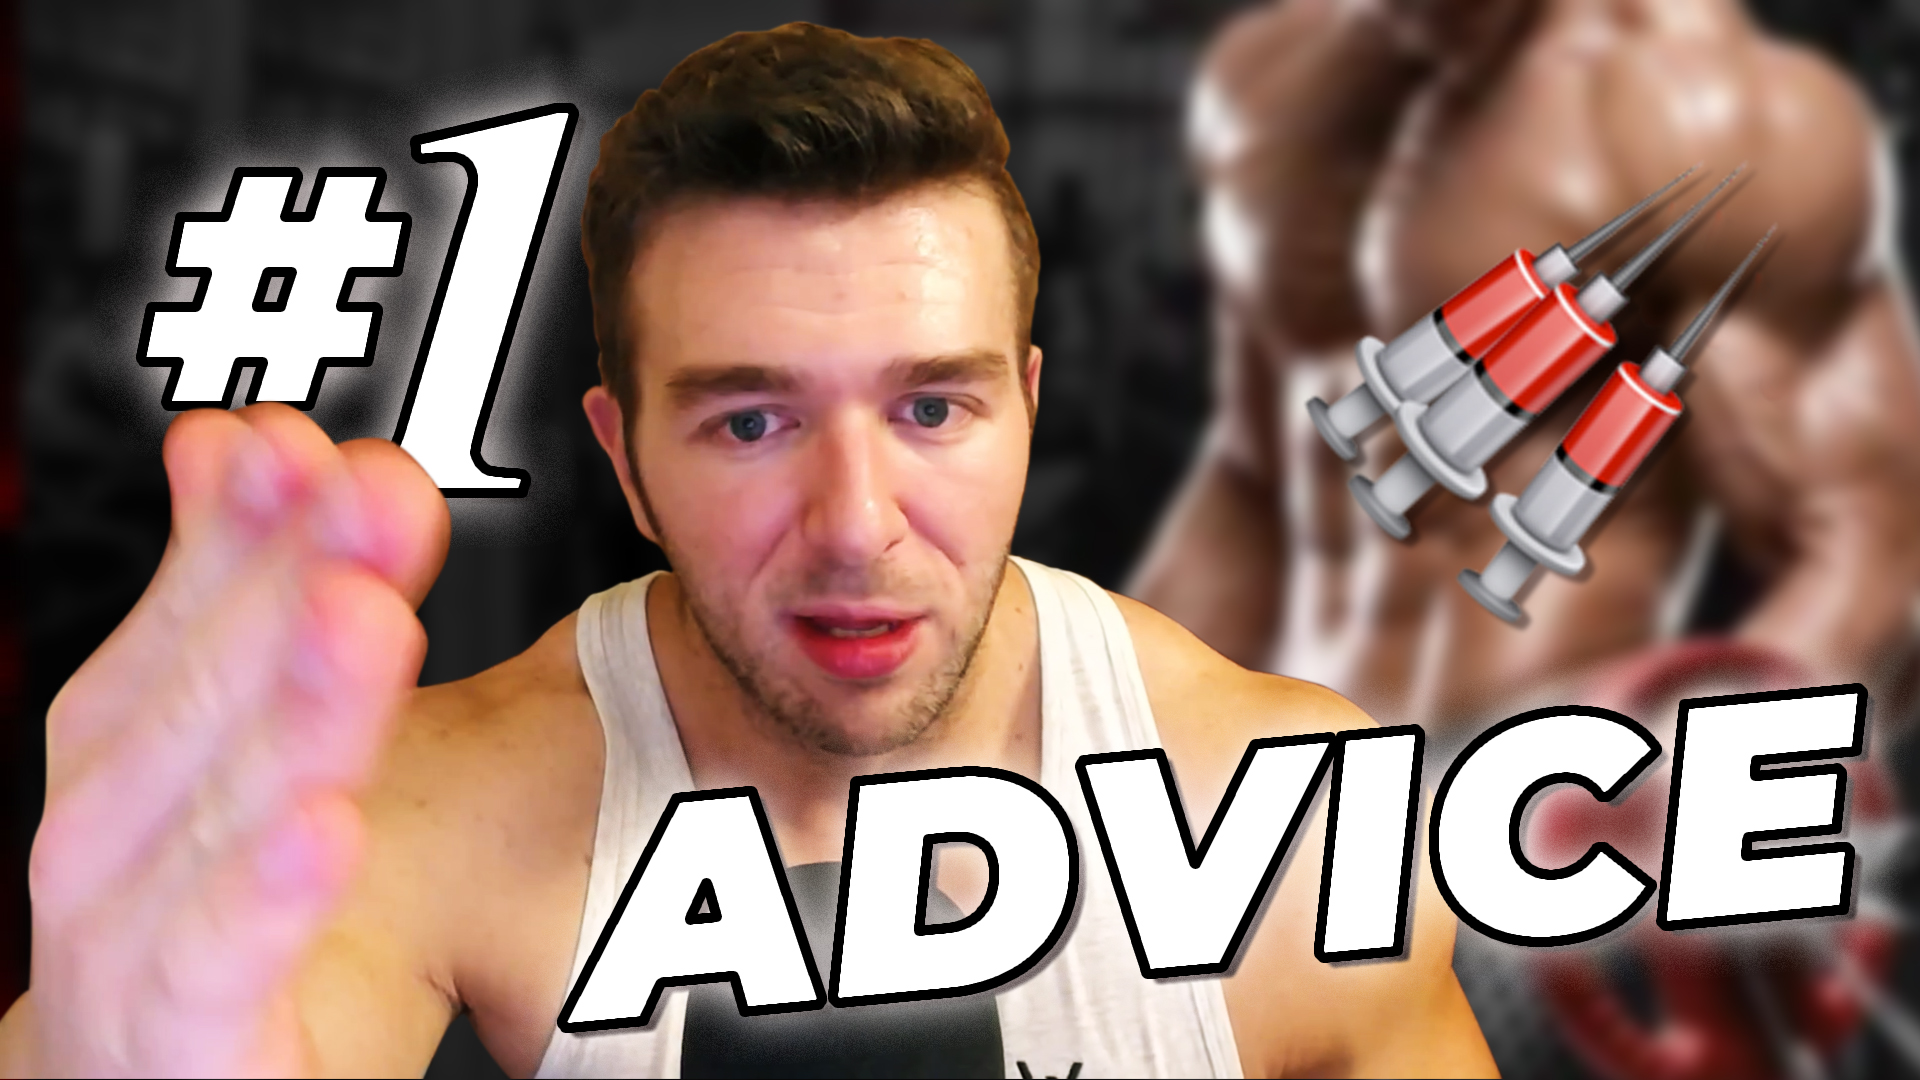 Derek MorePlateMoreDates My Number 1 advice if you are going to use steroids with 3 steroid injections and torso of bodybuilder